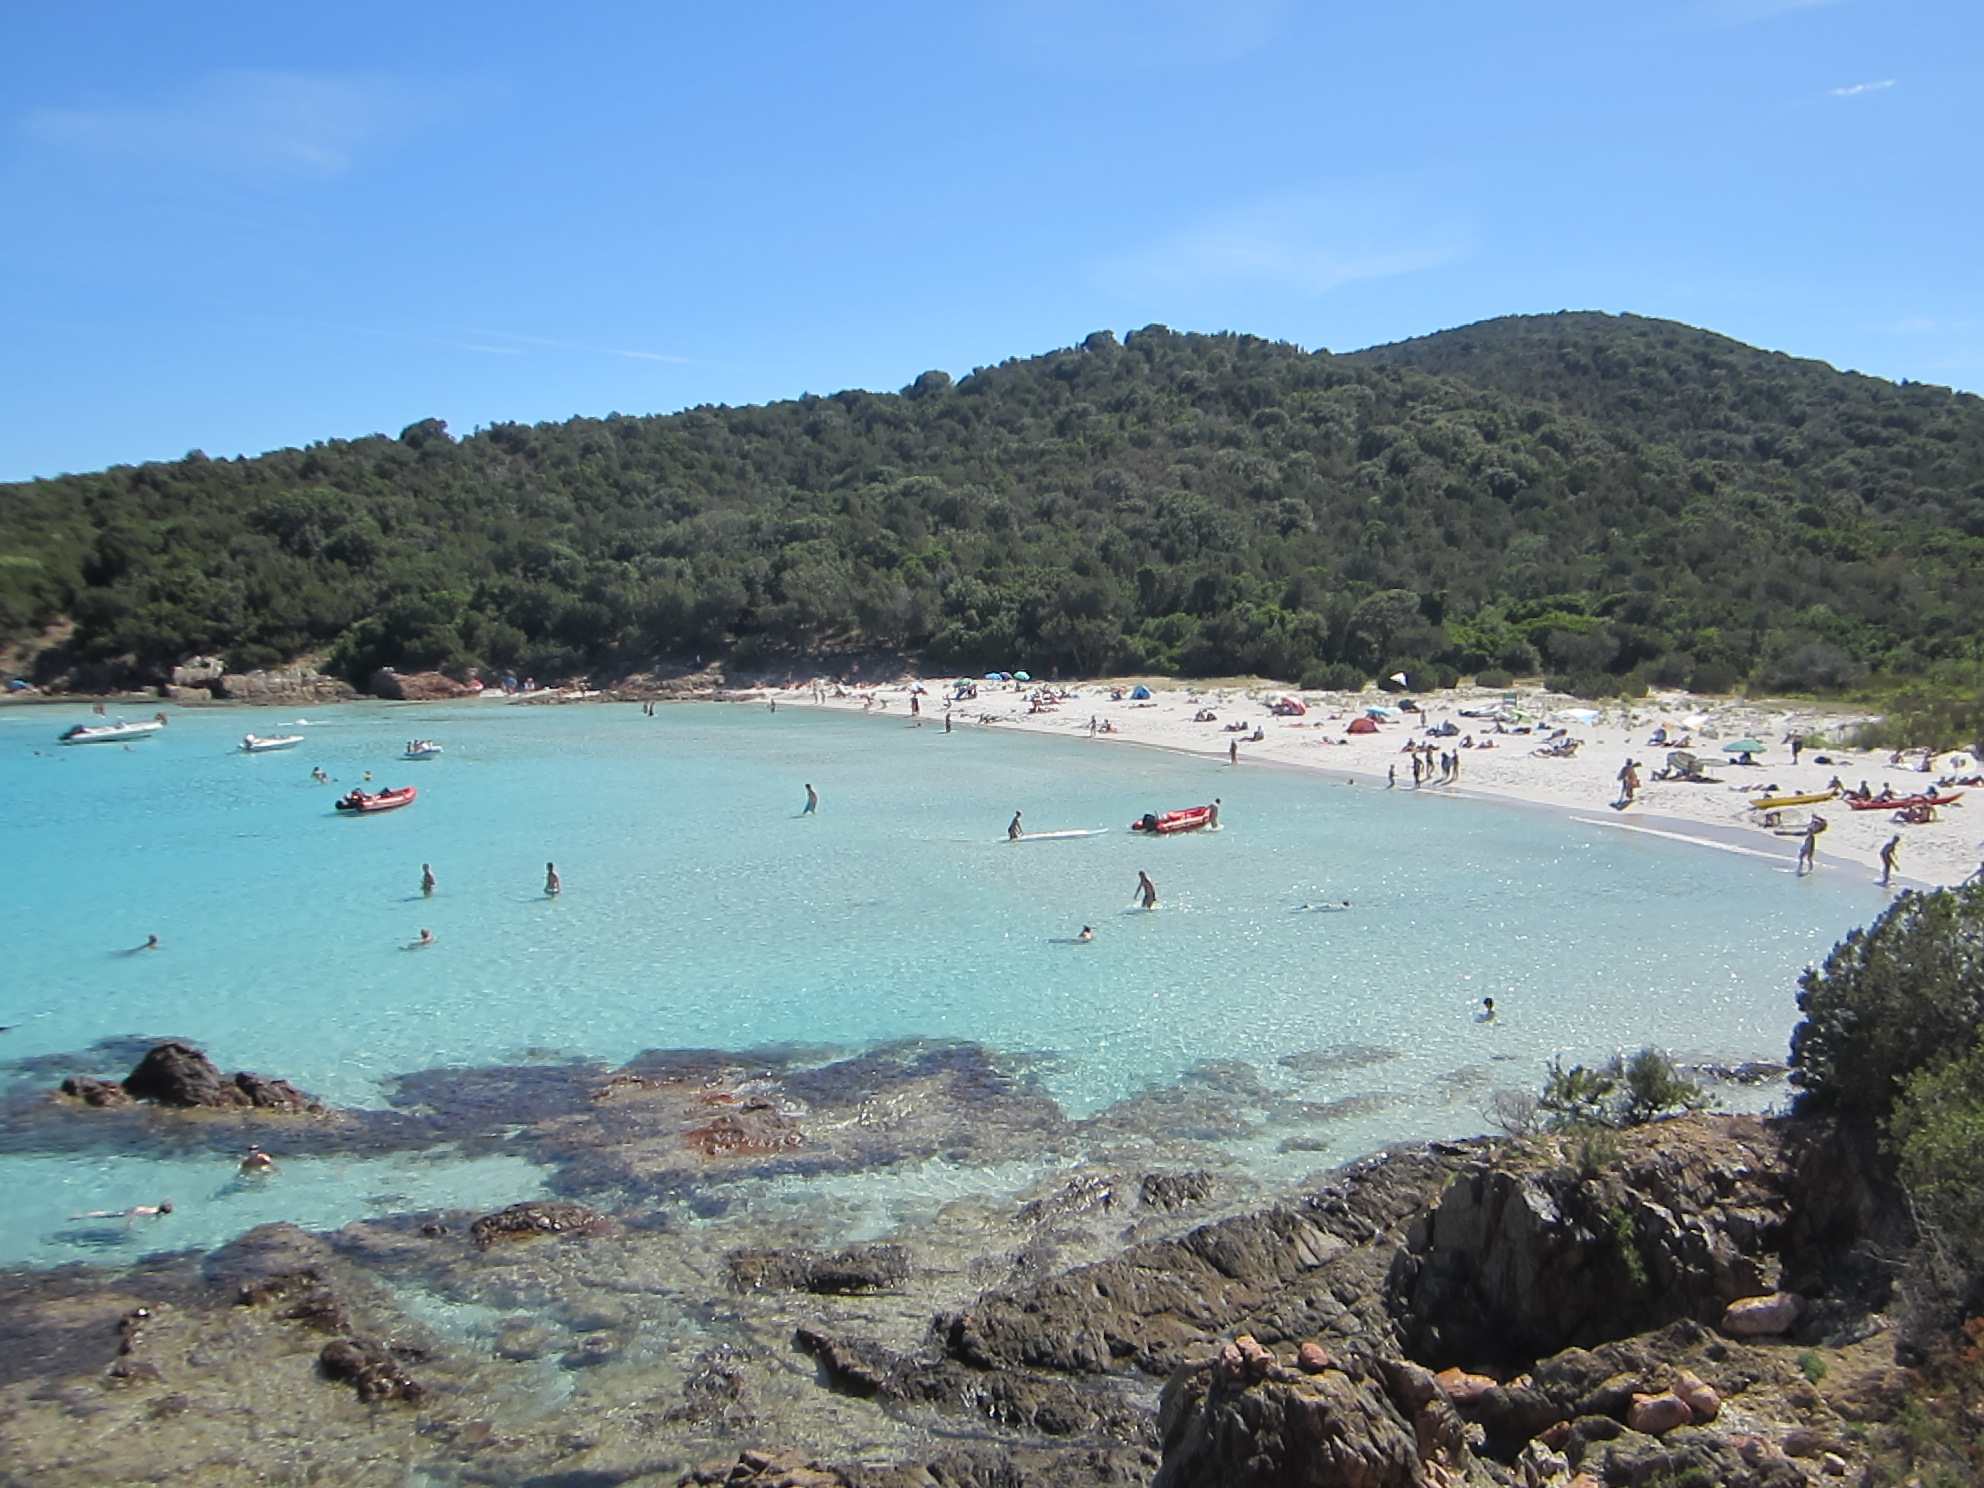 tahiti nude beach corsica | nudist living now